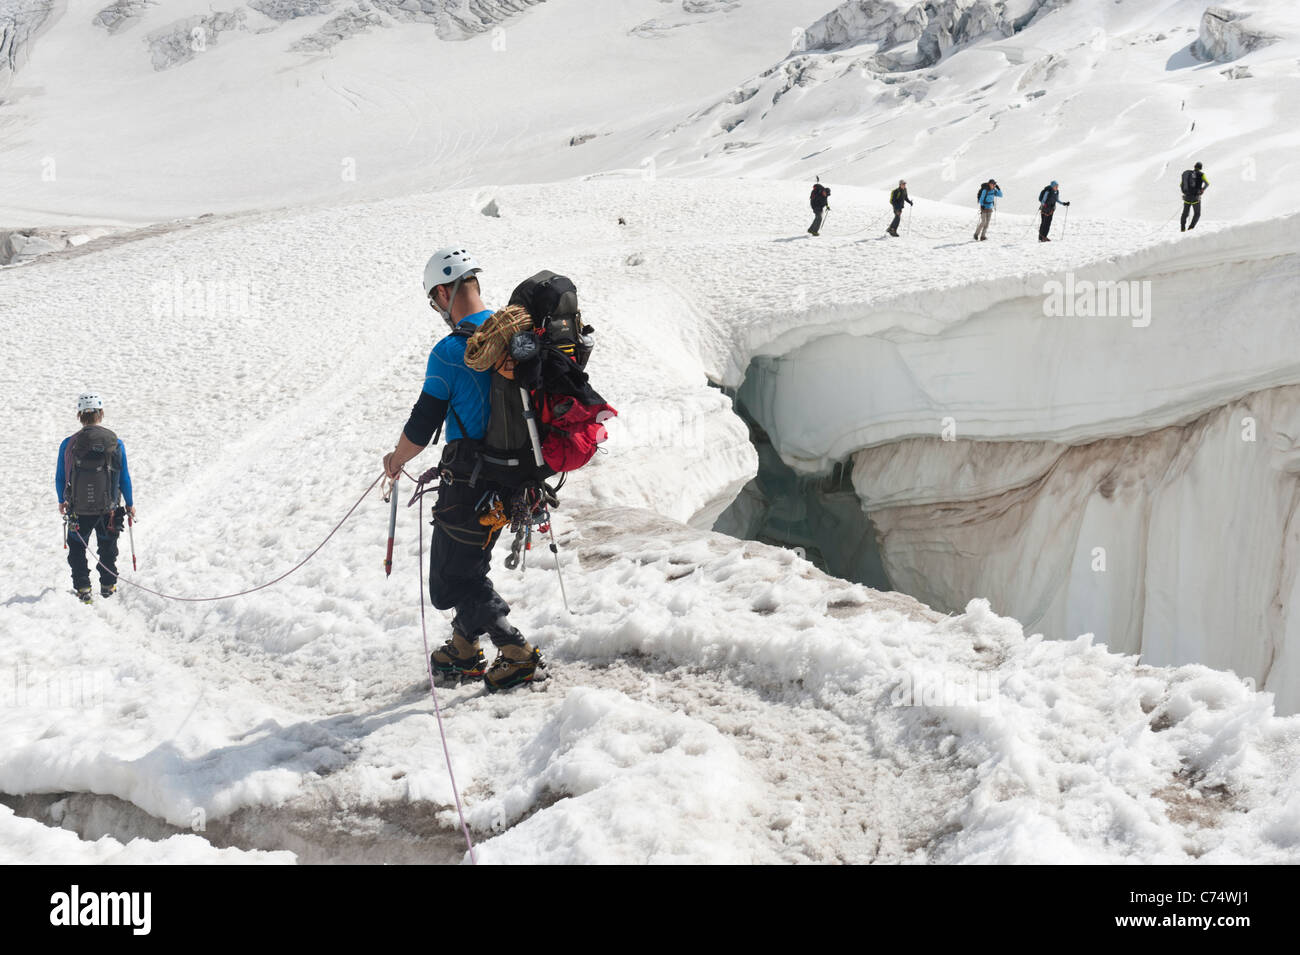 Climbers walking among crevasses on the Vallee Blanche glacier in Chamonix, France - Stock Image